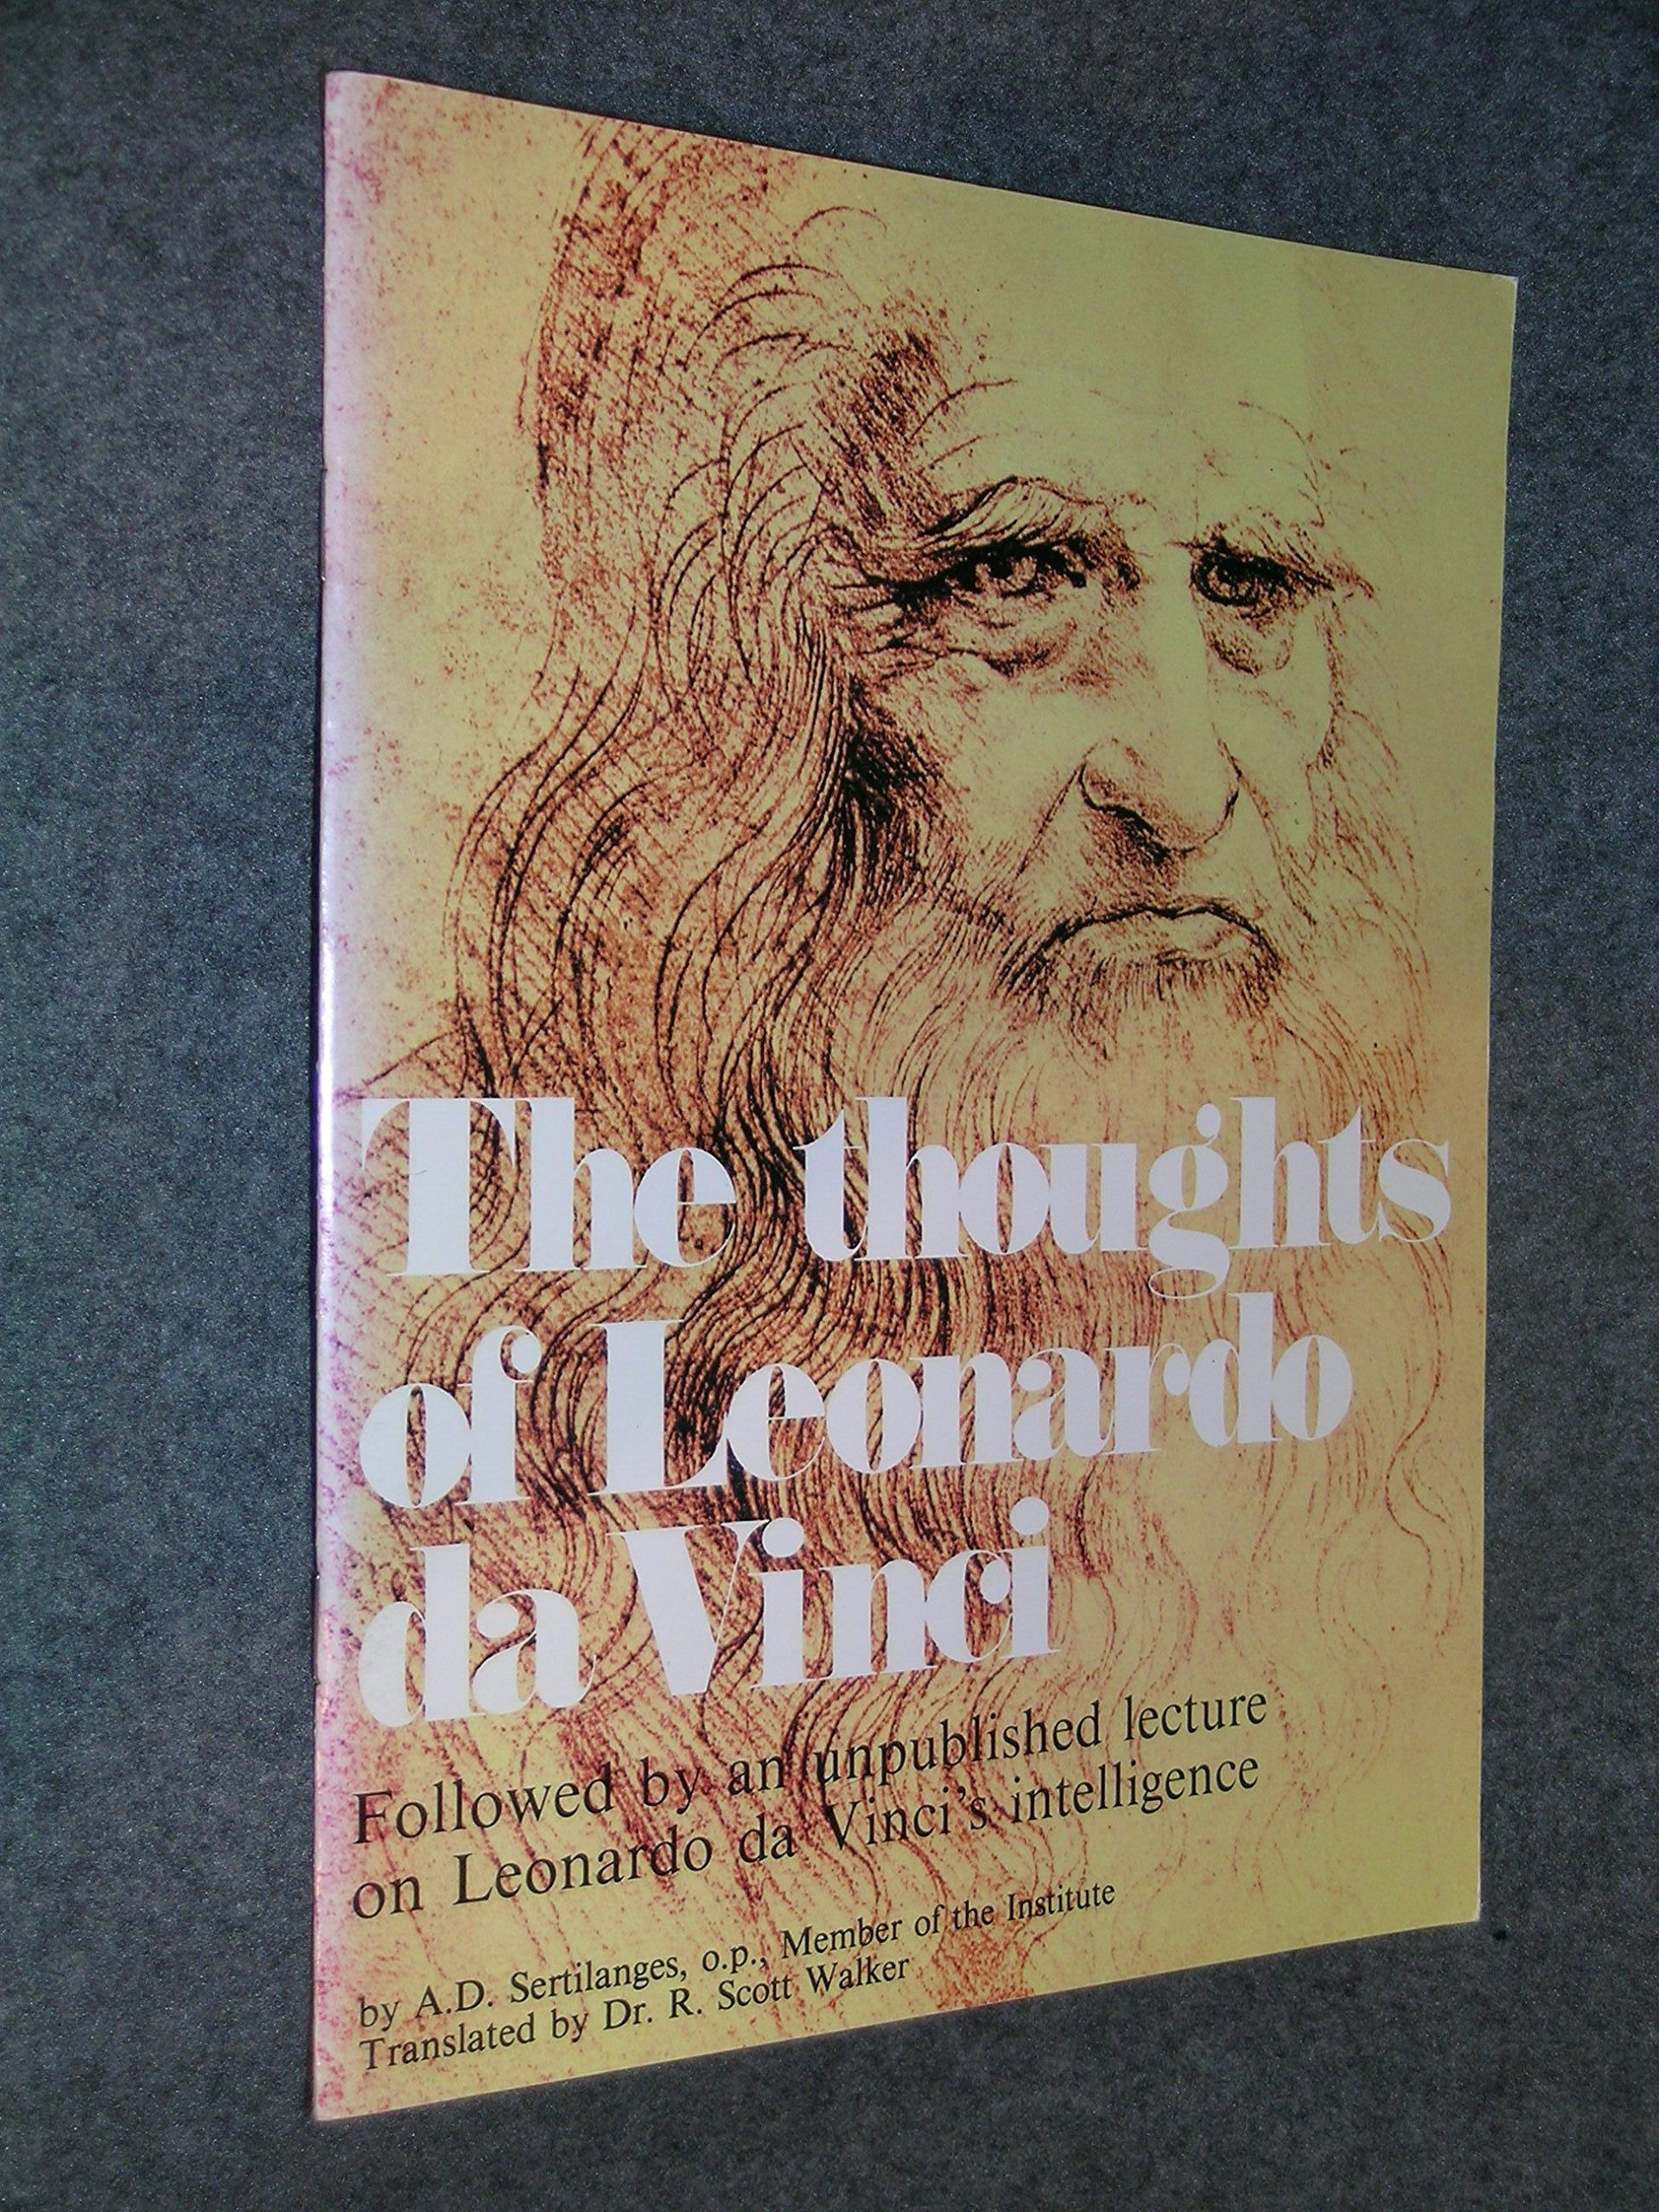 the thoughts of leonardo da vinci followed by an unpublished lecture on leonardo da vincis intelligence